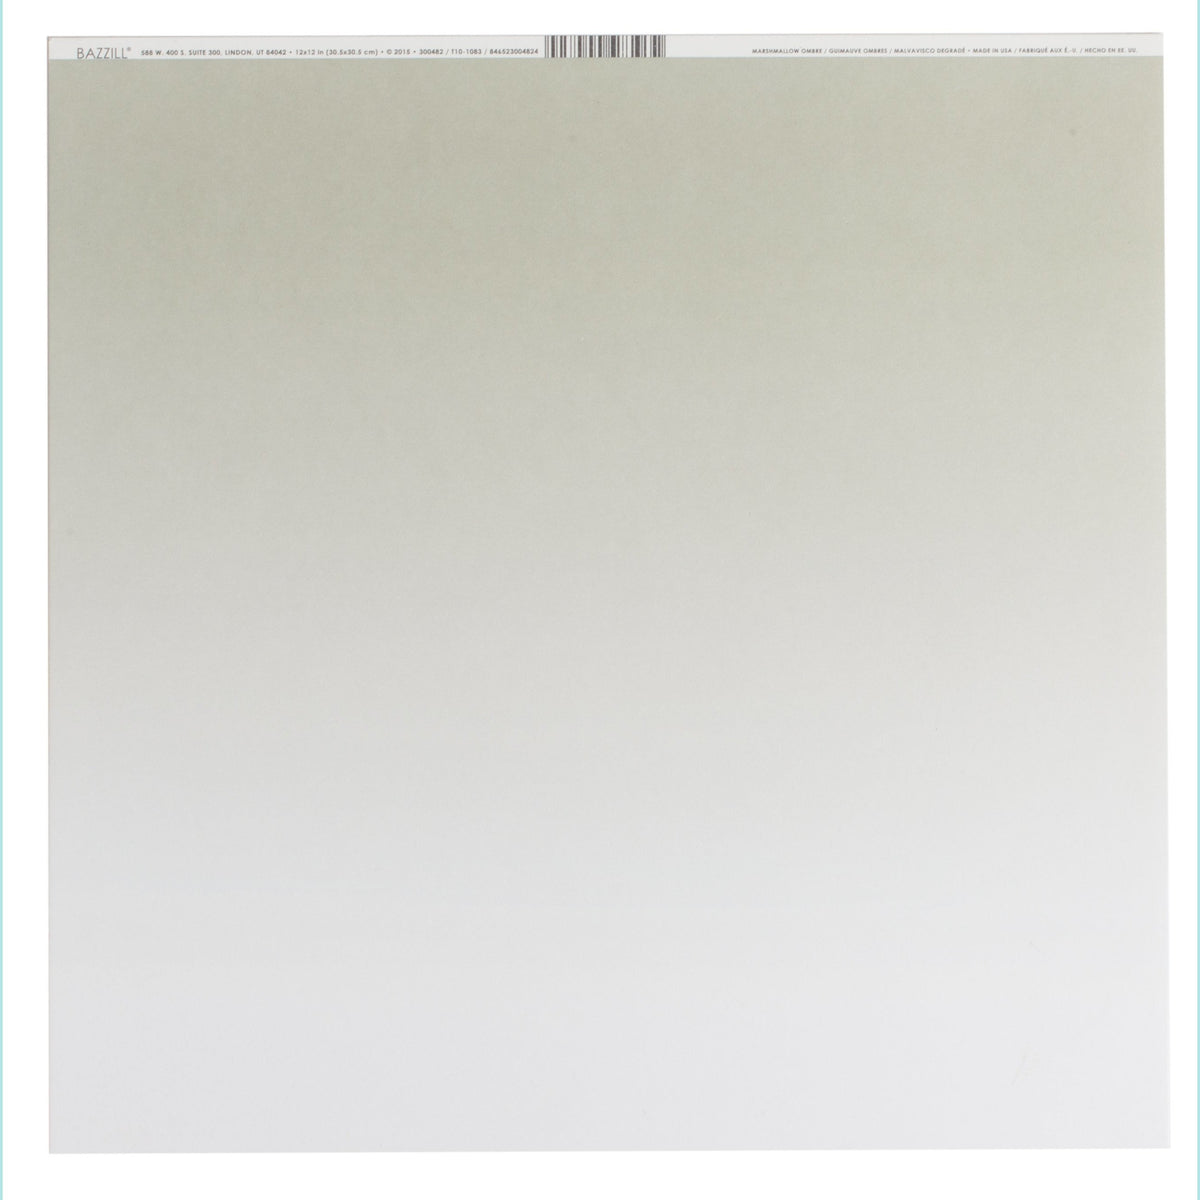 Bazzill Basics Ombre Cardstock 12 x 12 Inch Robins Egg 25 Pack